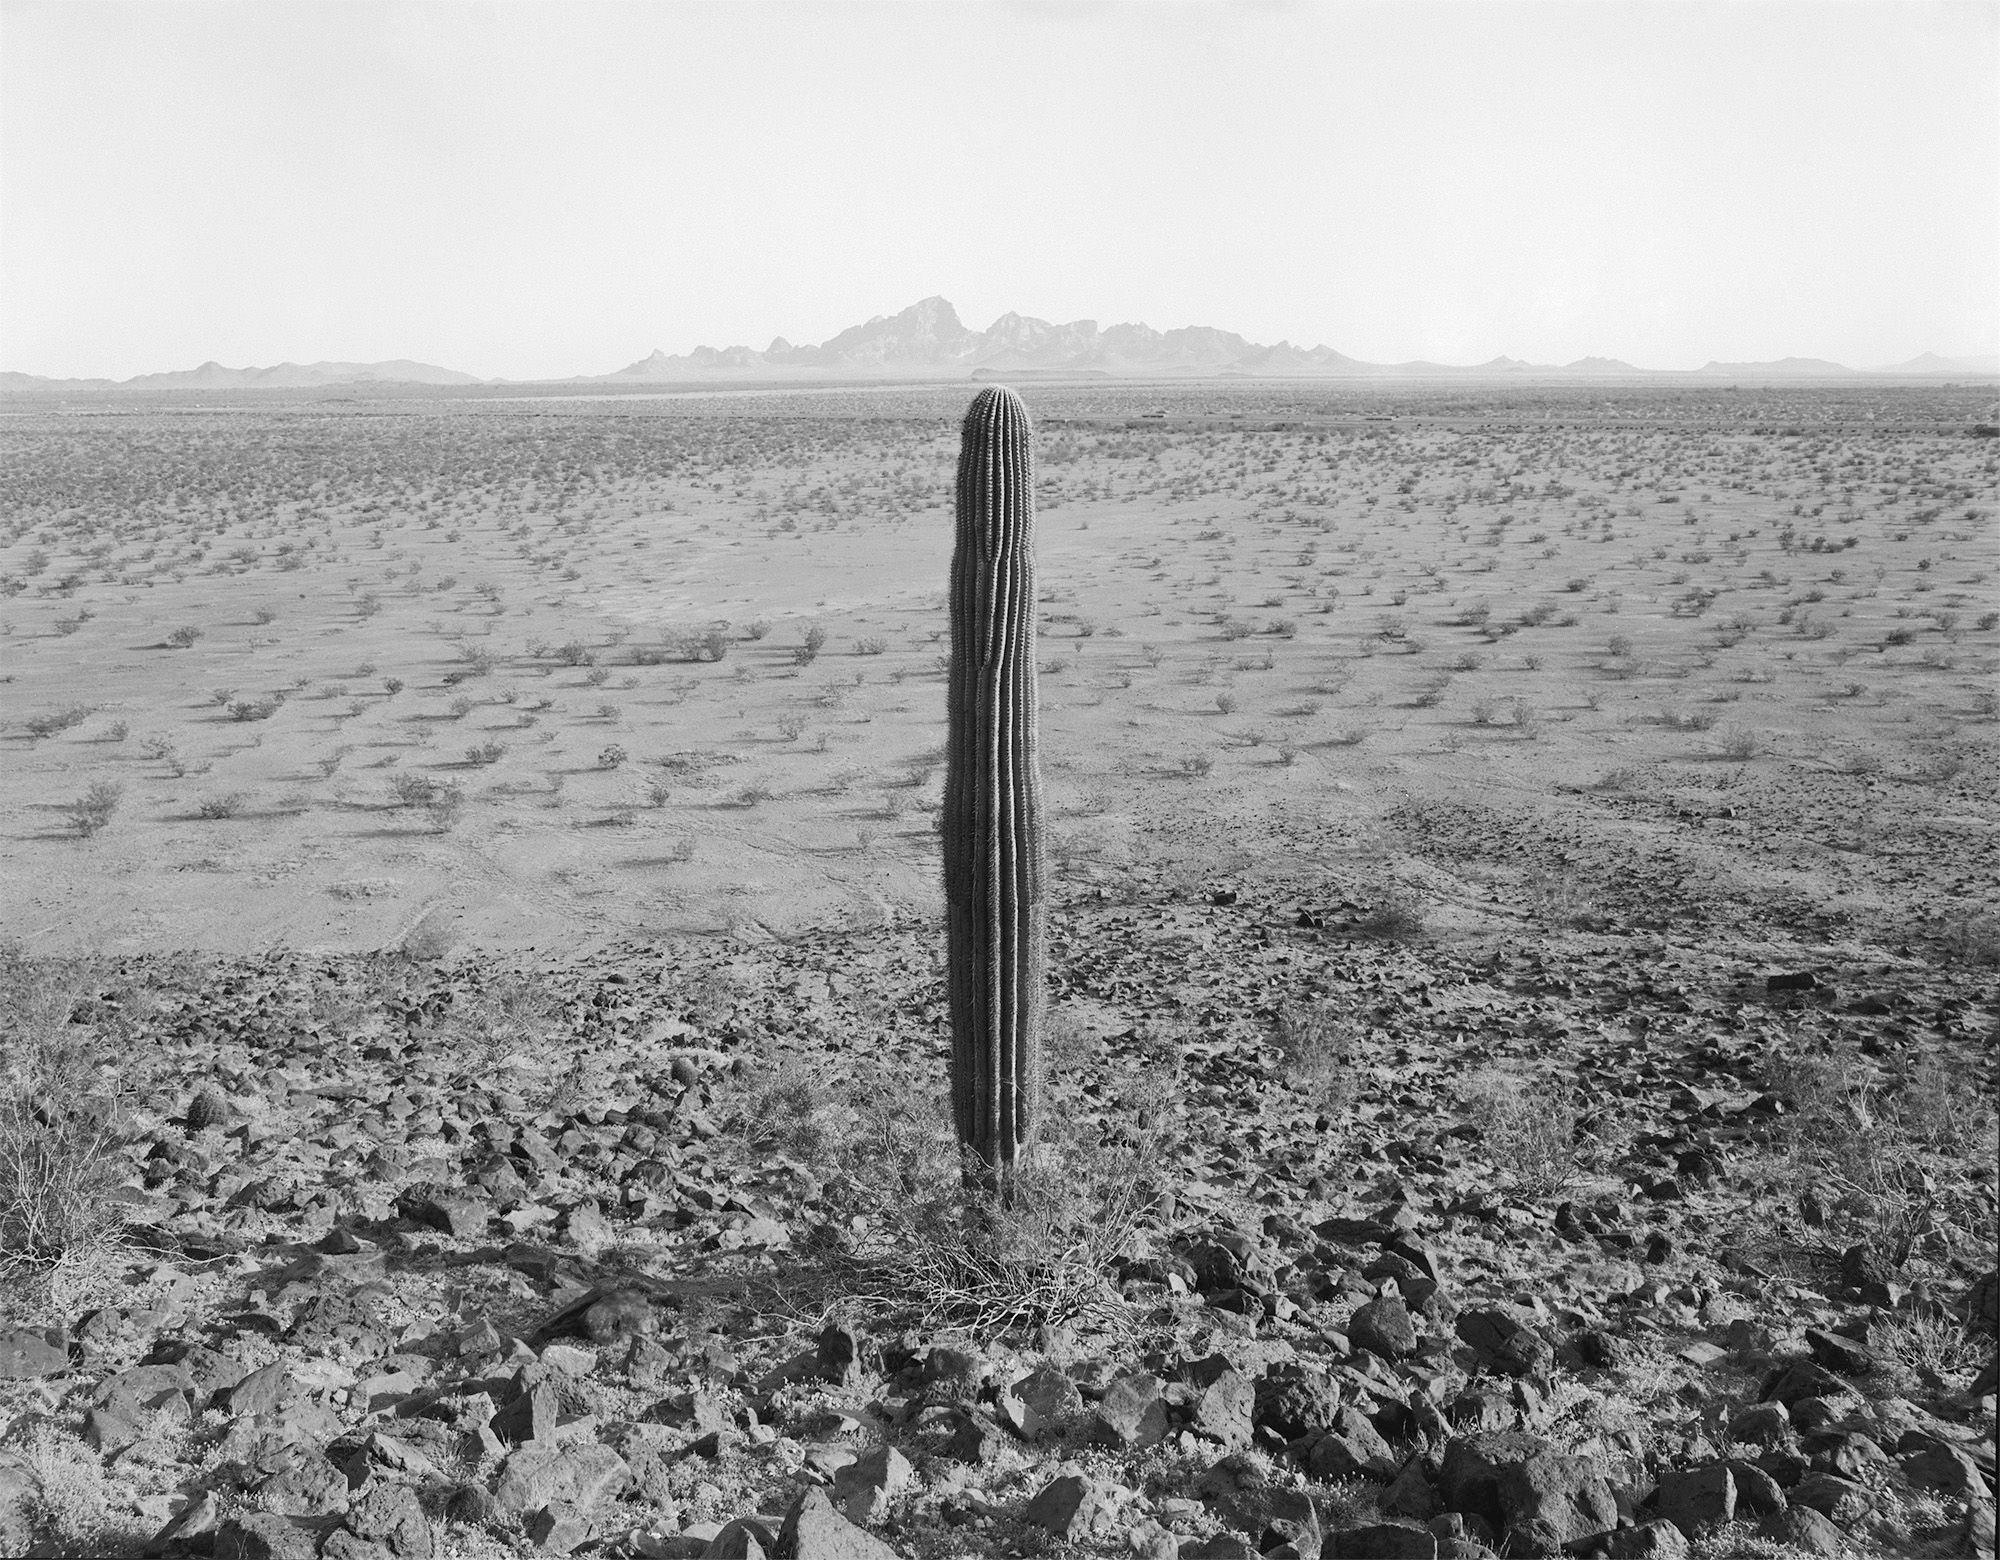 Cactus, Arizona, USA, 1977